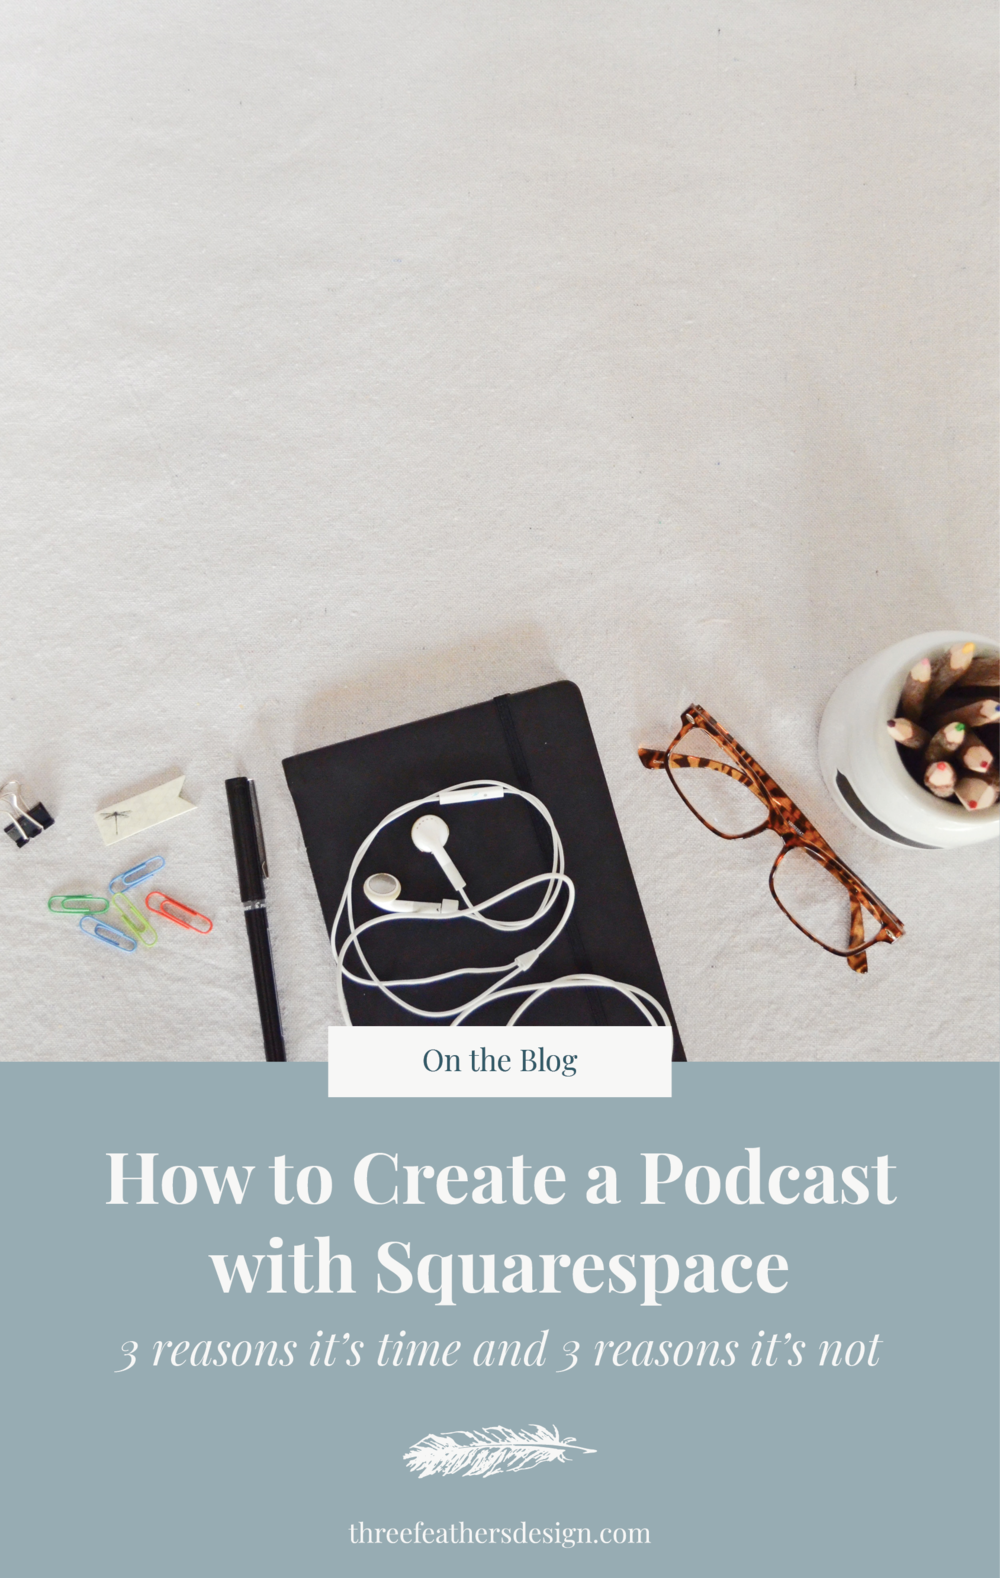 How to Create a Podcast with Squarespace | Three Feathers Design | threefeathersdesign.com